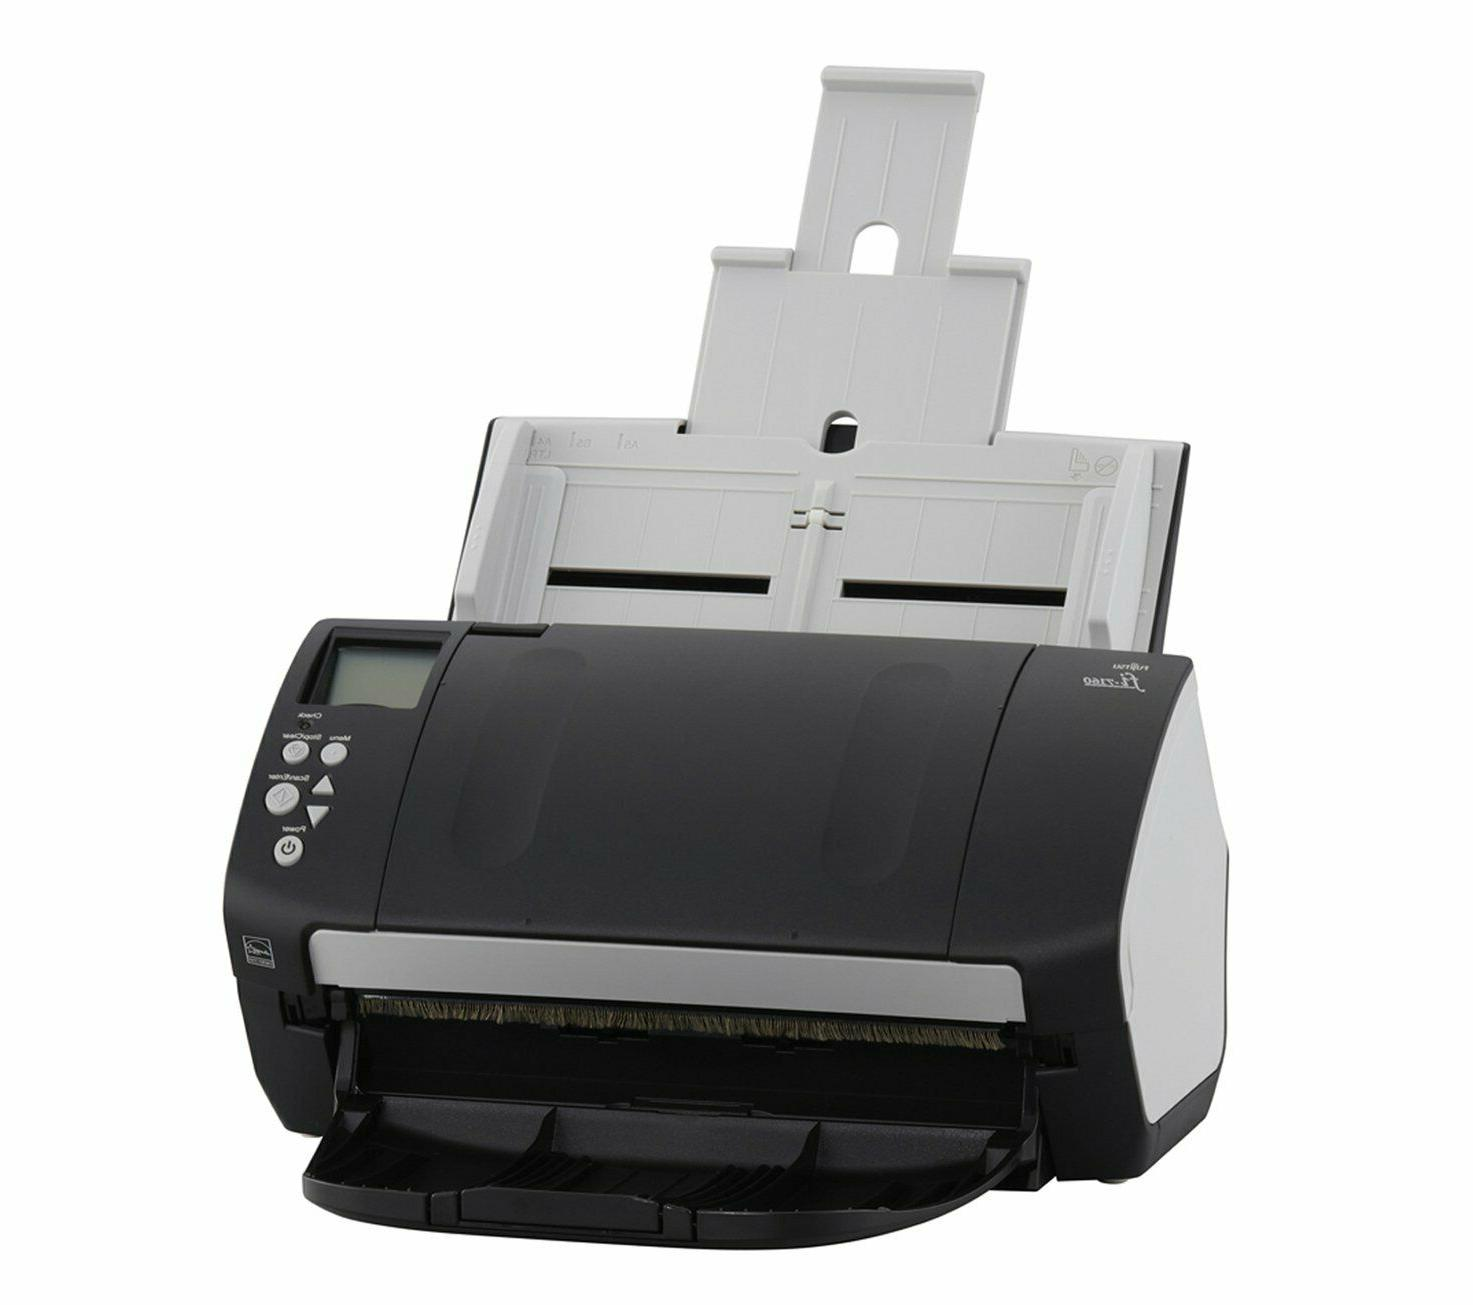 New fi-7160 Color Scanner